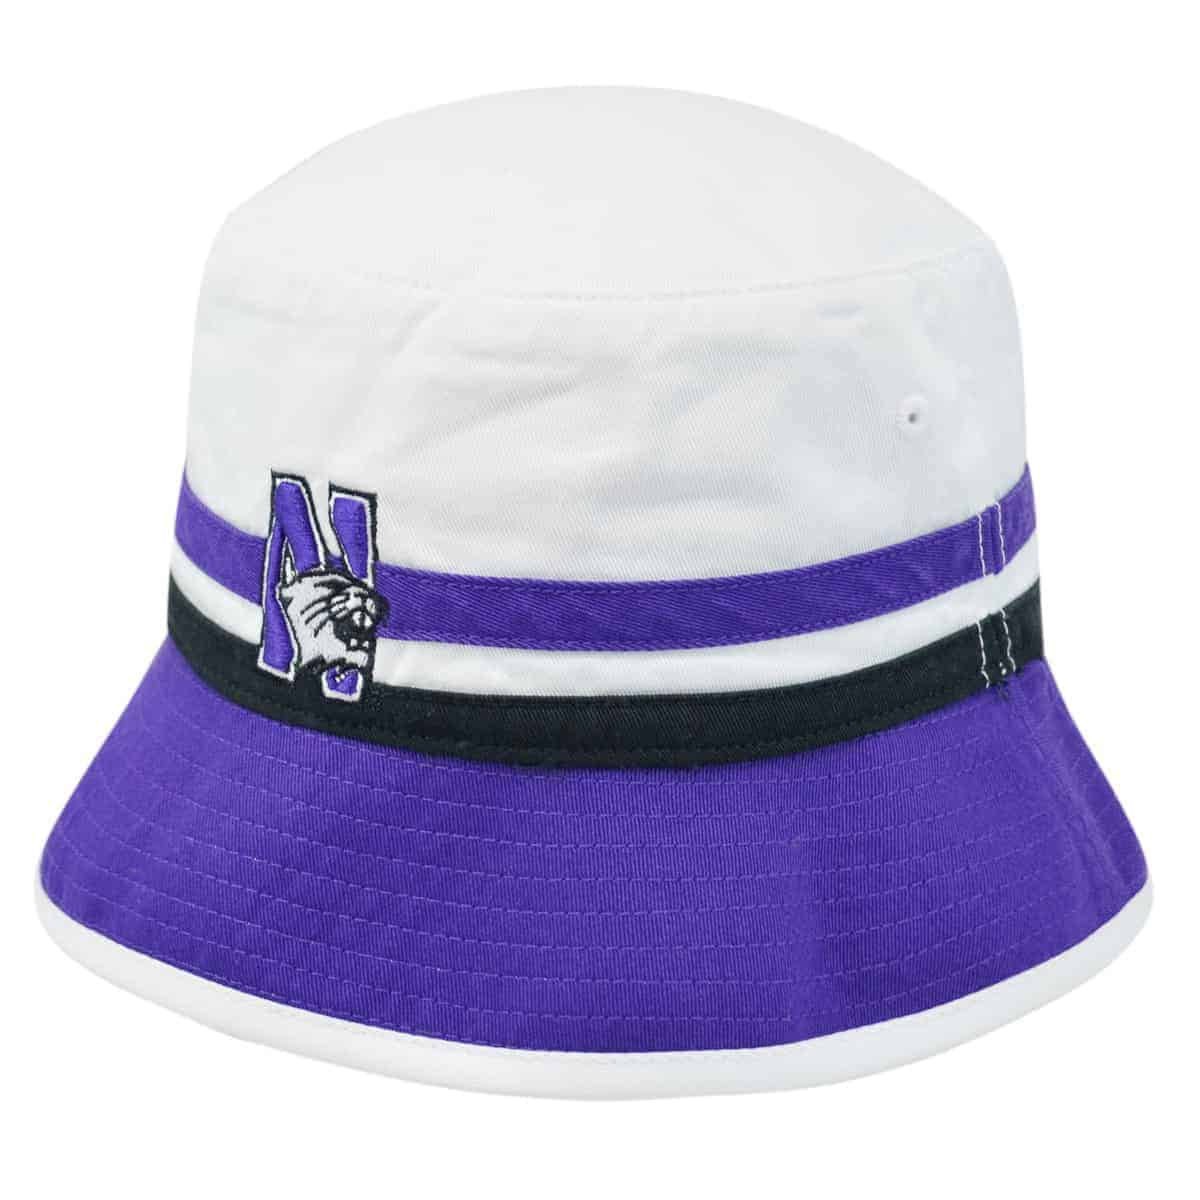 e864df484da1b Northwestern Wildcats White   Purple Floppy Bucket Hat with N-Cat Design